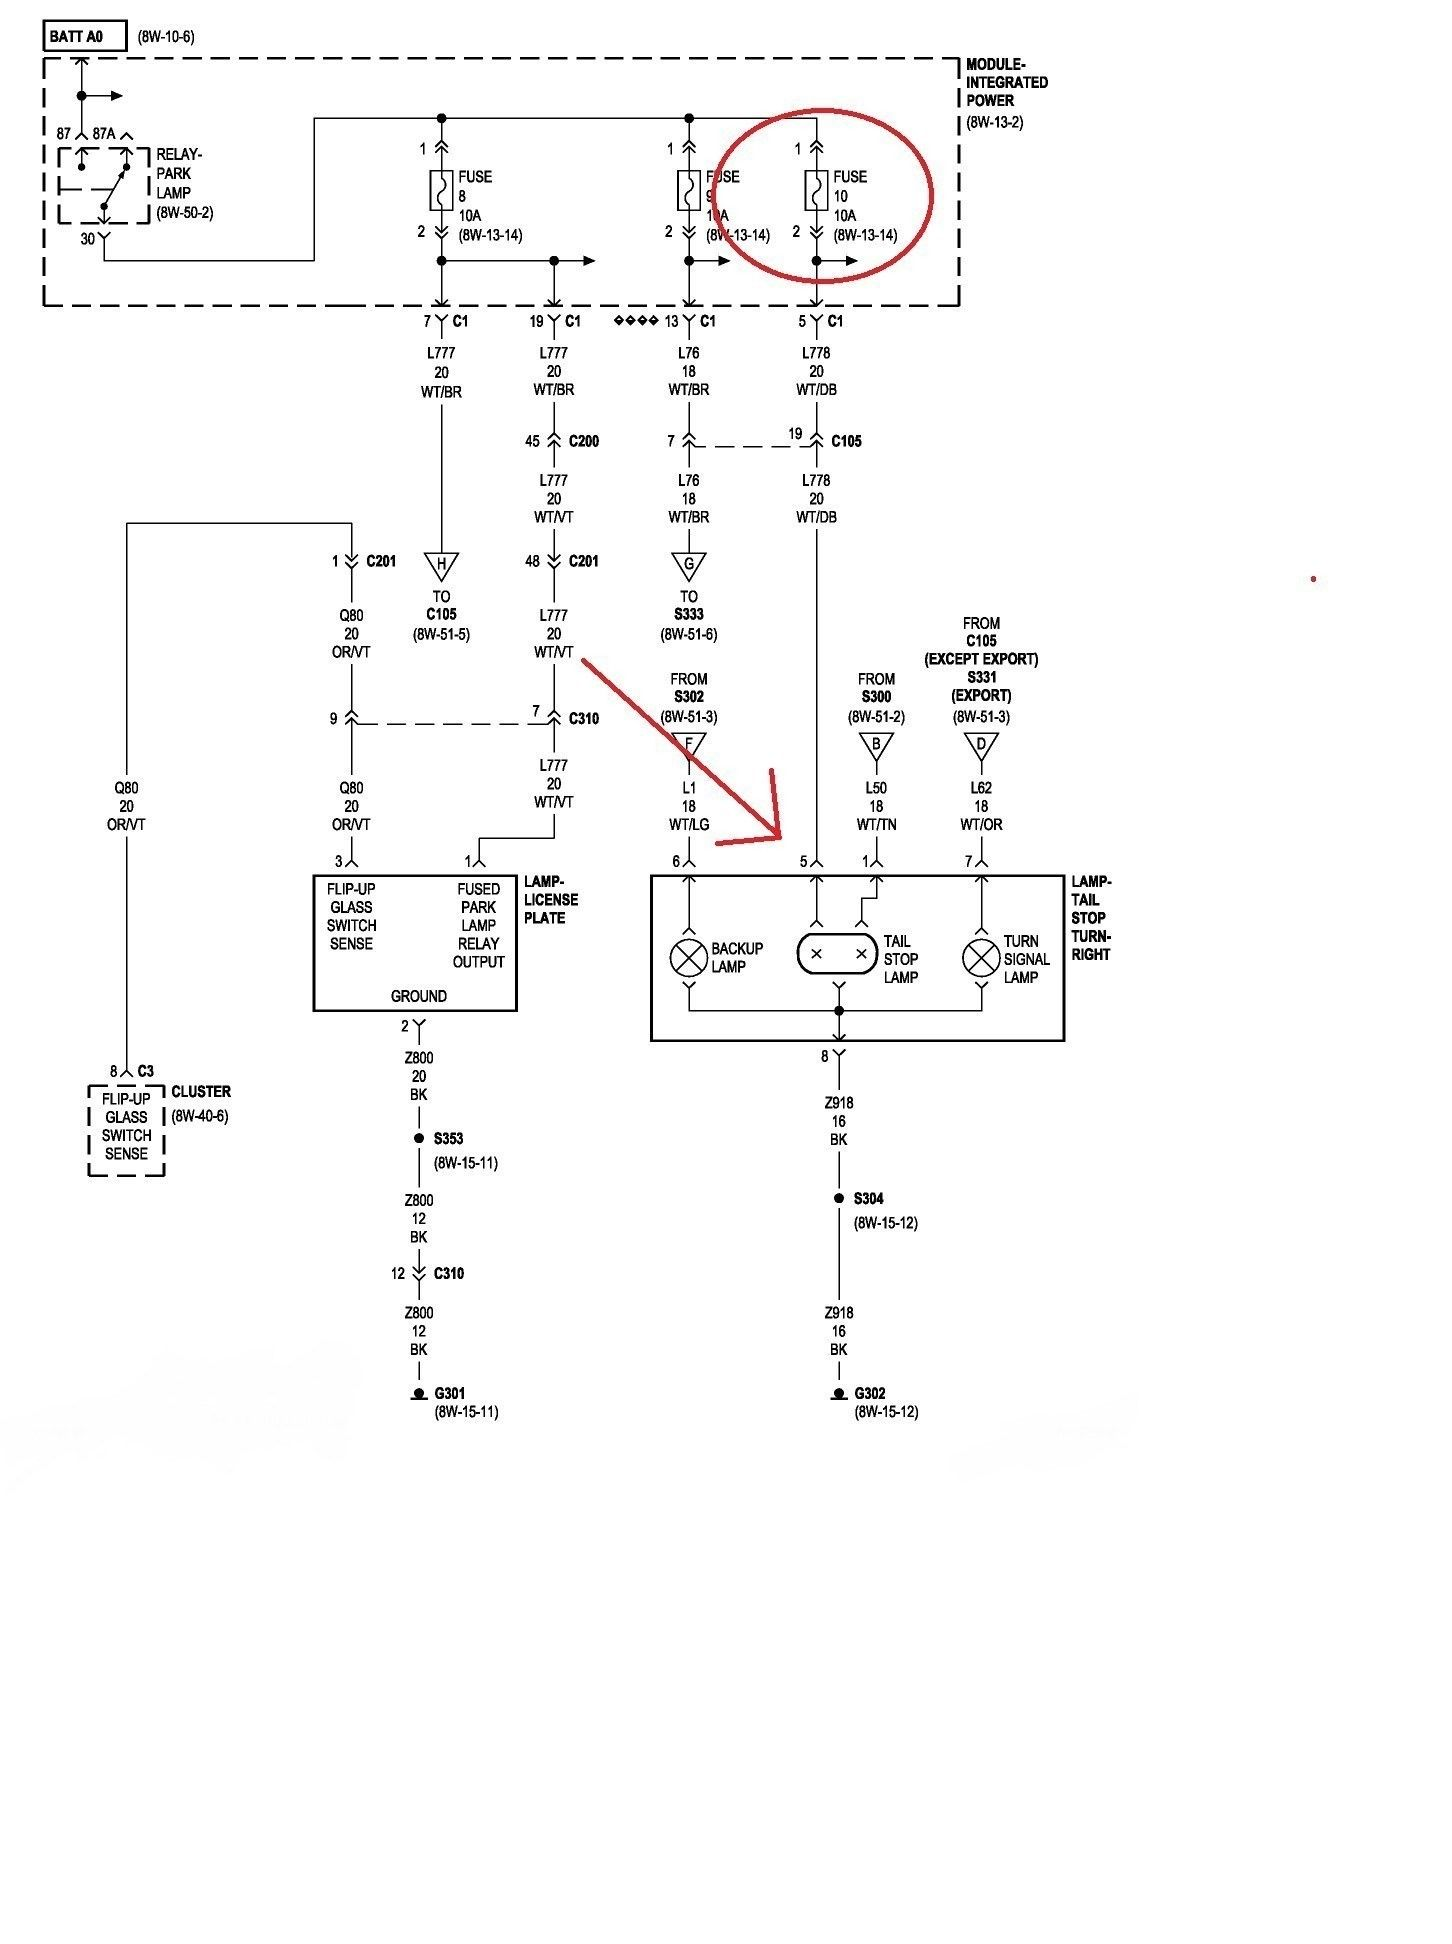 1998 Jeep Wiring Diagram - Go Wiring Diagram Jeep Grand Cherokee Laredo Engine Diagram on jeep cj7 engine diagram, 89 jeep cherokee engine diagram, jeep grand cherokee front suspension diagram, 2001 jeep cherokee rear brake diagram, jeep liberty 3.7, jeep wrangler 2.5 engine diagram, jeep cherokee 4.0 engine diagram, 1997 jeep grand cherokee vacuum line diagram, jeep grand wagoneer engine diagram, jeep tj engine diagram, jeep cherokee sport engine diagram, 1998 jeep cherokee transfer case diagram, 1989 jeep cherokee engine diagram, 1999 jeep cherokee exhaust system diagram, jeep 4.7 engine diagram, jeep grand cherokee automatic transmission sensor, jeep compass engine diagram, jeep comanche engine diagram, jeep grand cherokee 2001 4.7 v8 engine, cj jeep engine diagram,